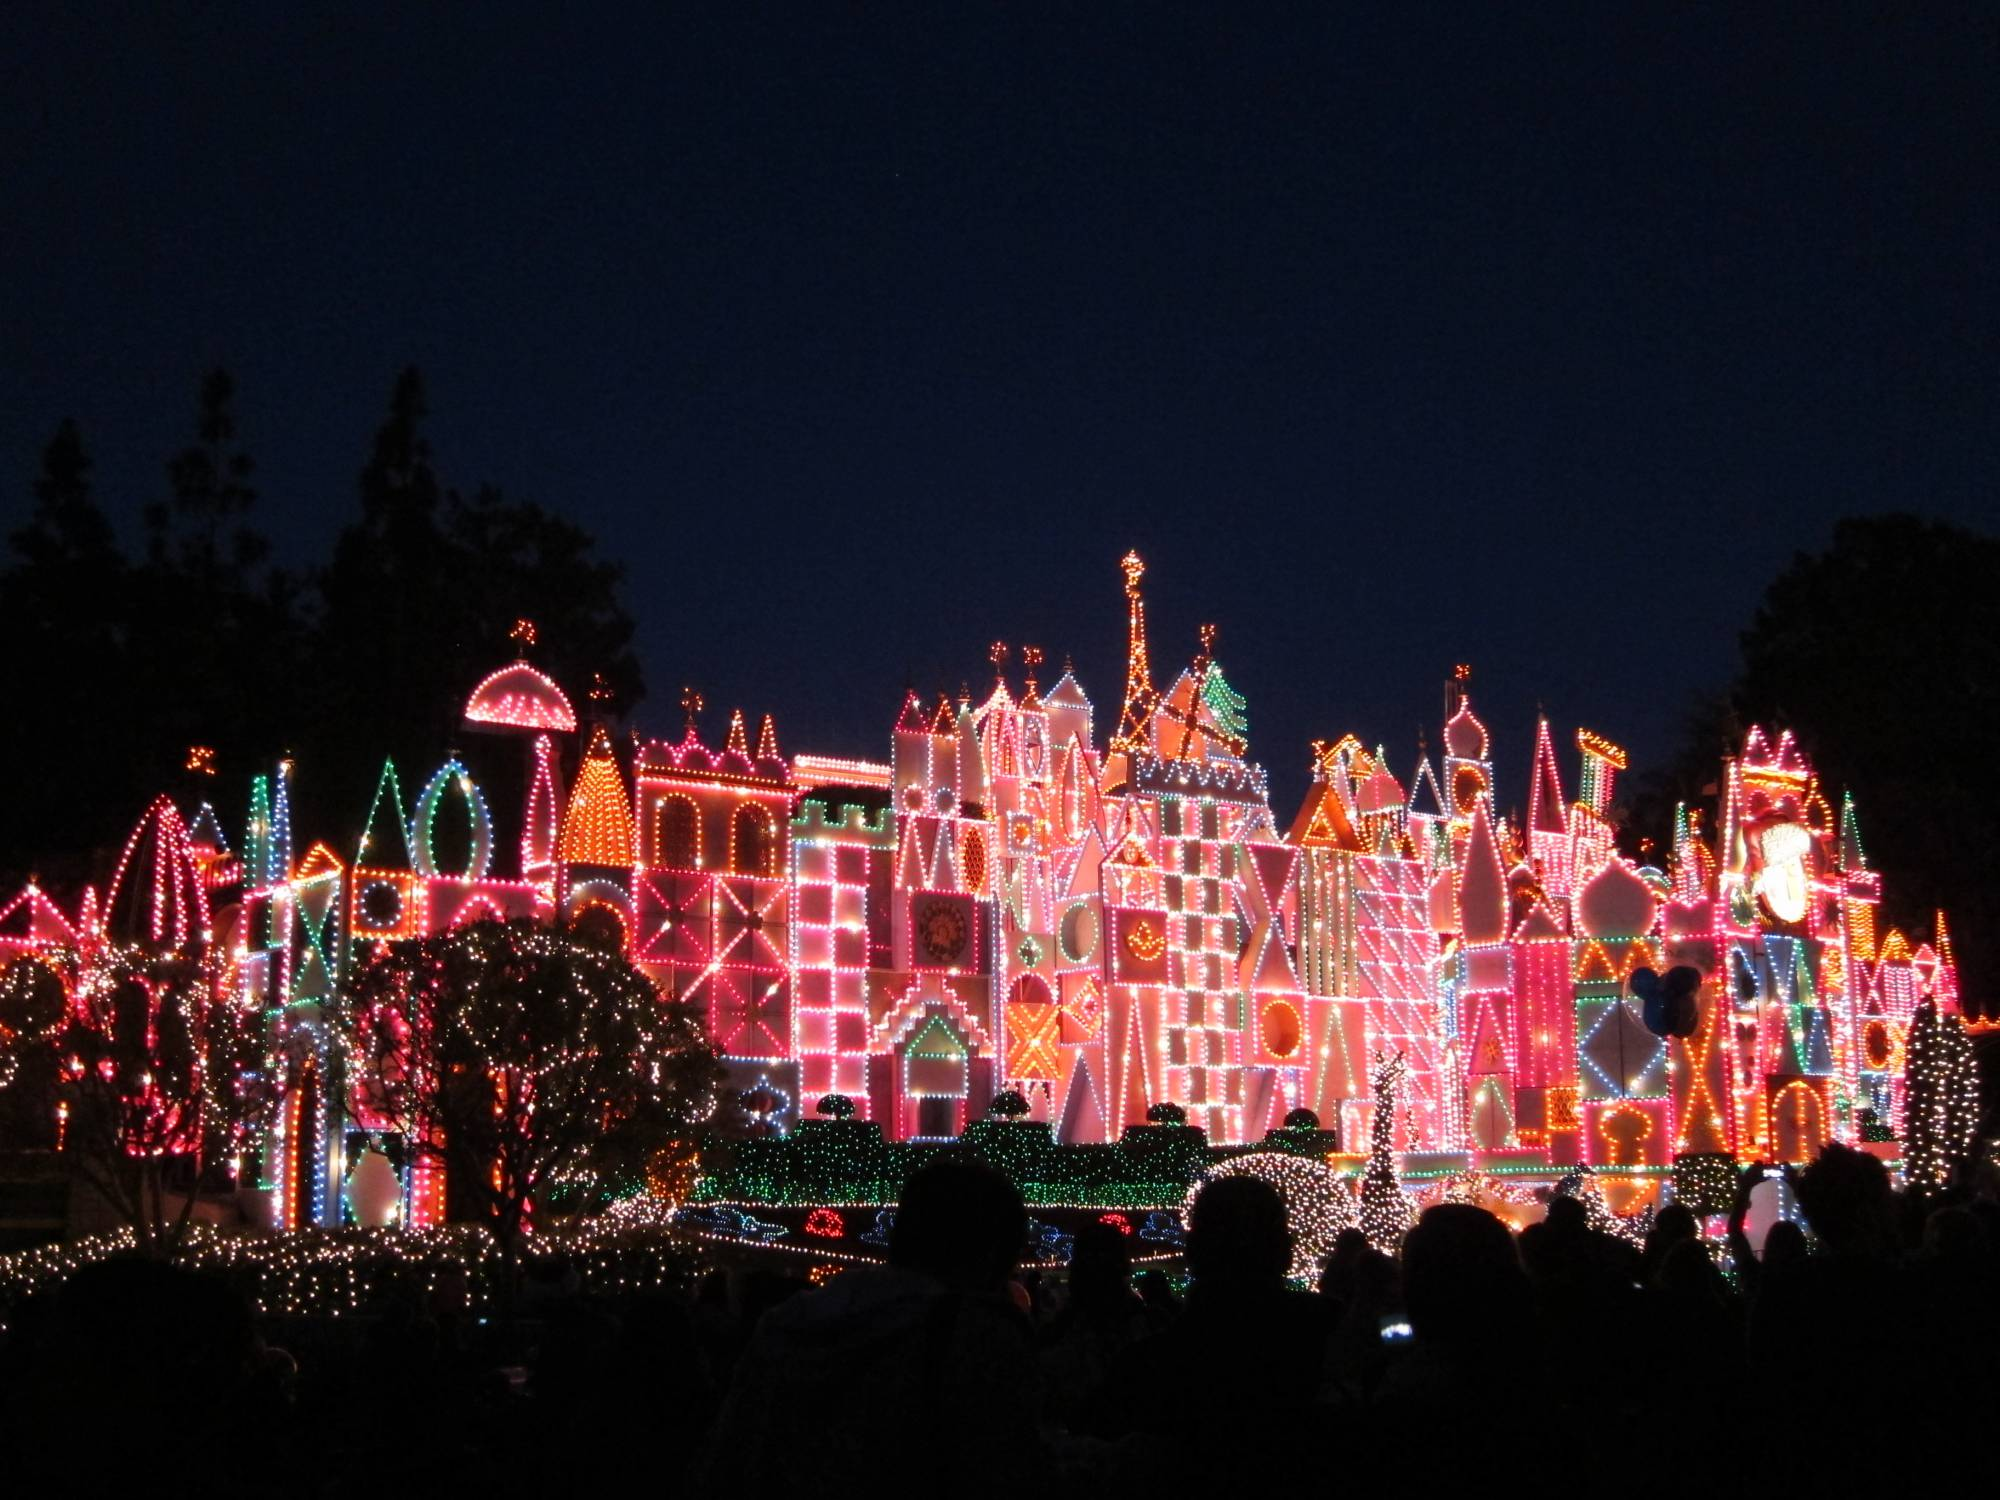 Explore the magic of the holiday season at Disneyland | PassPorter.com